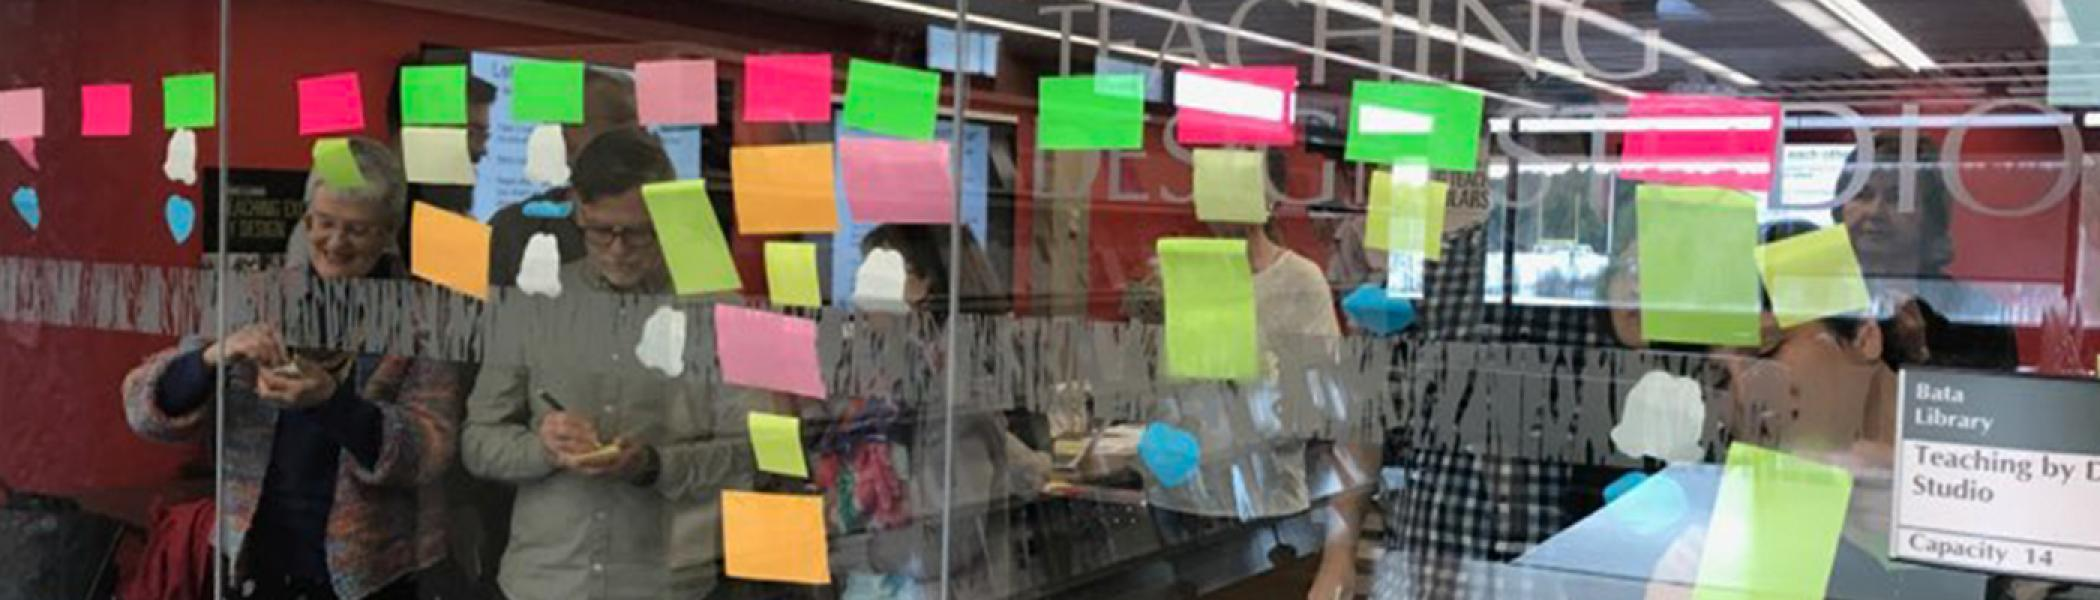 Photo from behind glass, while instructors do a sticky note activity in the opposing room.  Stickies posted to wall.